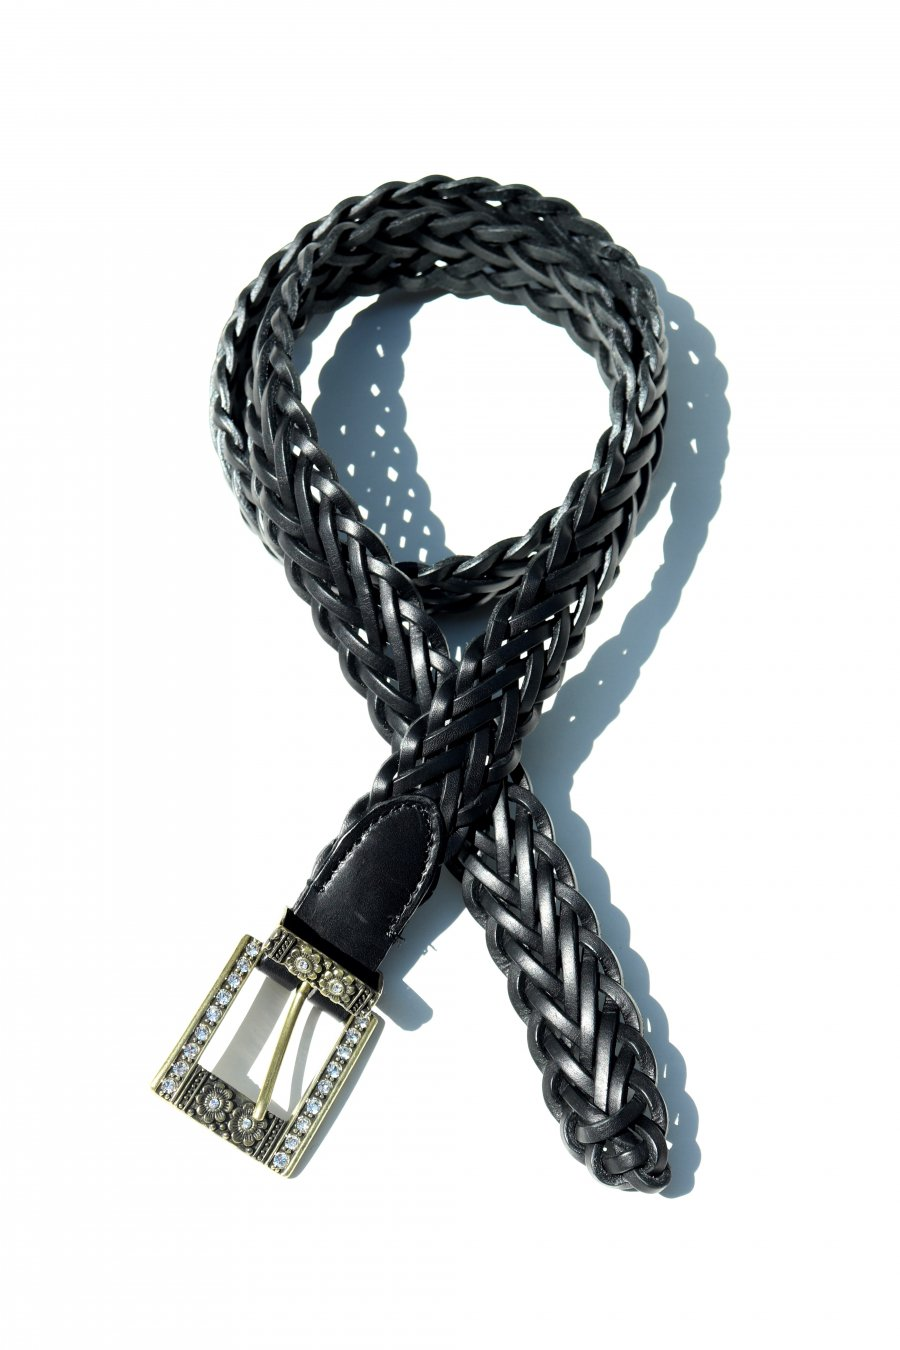 soe  Braid Leather with(BLACK)<img class='new_mark_img2' src='https://img.shop-pro.jp/img/new/icons15.gif' style='border:none;display:inline;margin:0px;padding:0px;width:auto;' />